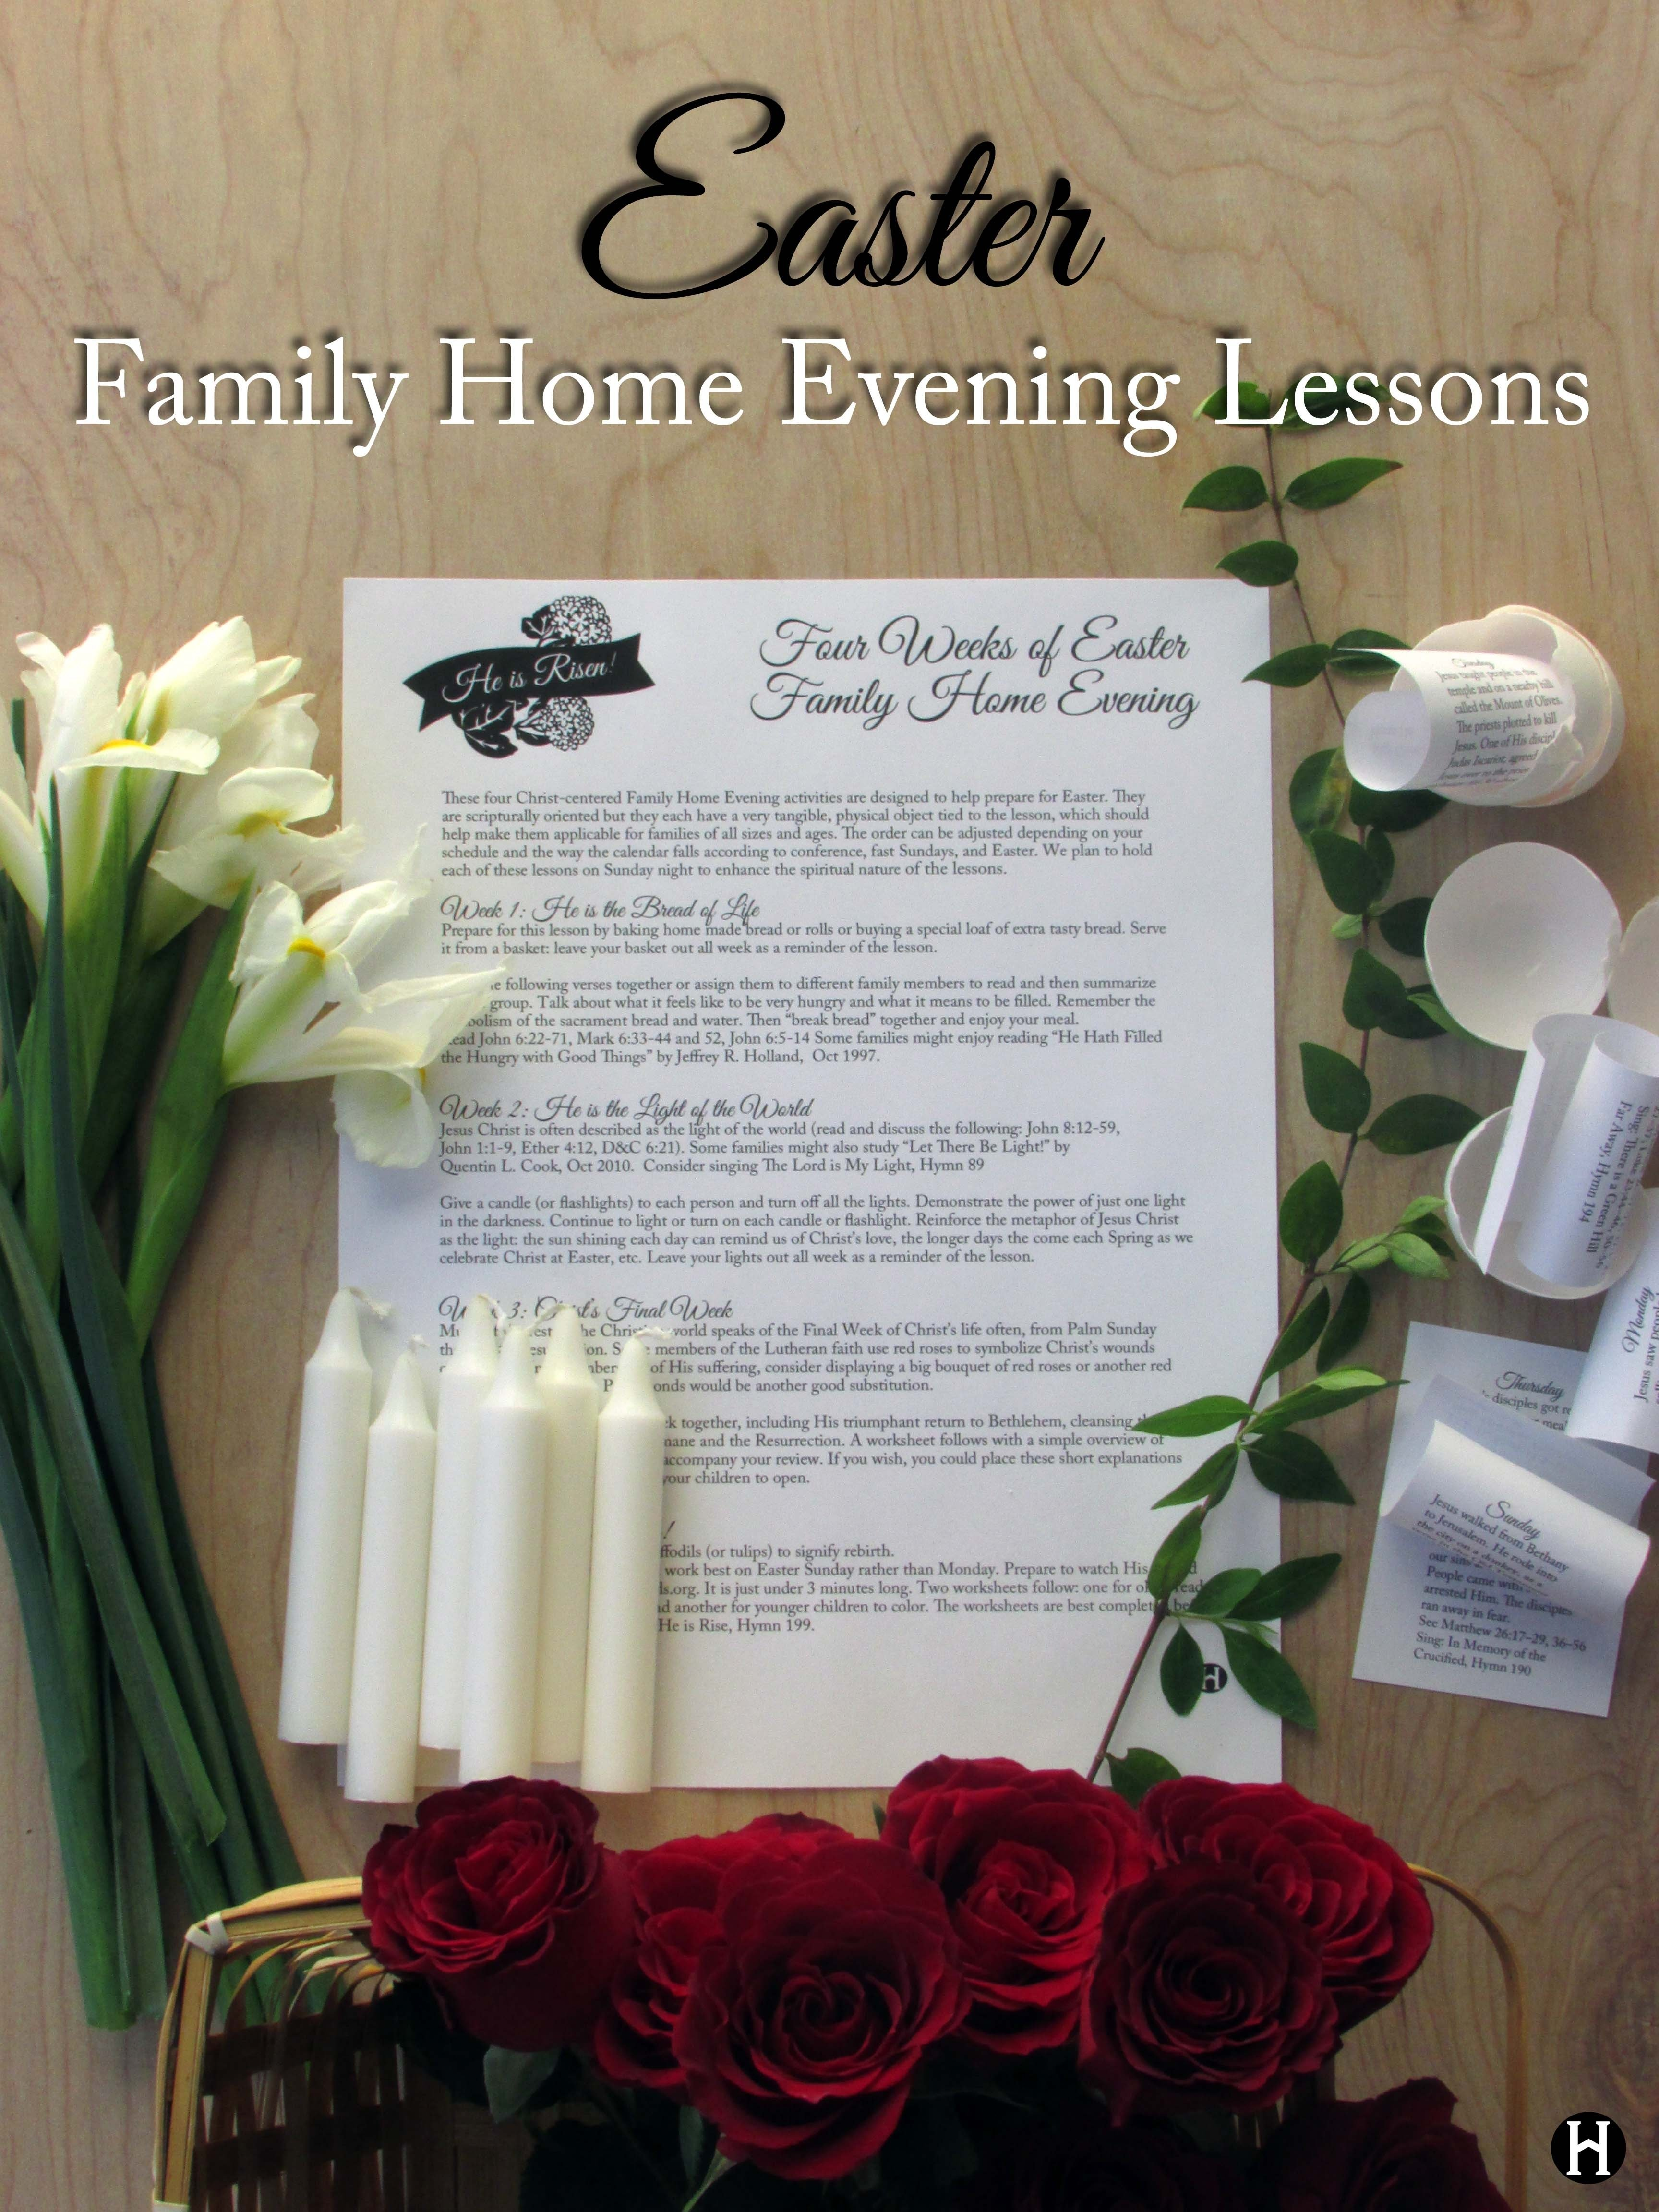 10 Unique Family Home Evening Lesson Ideas easter family home evening lessons the mormon home